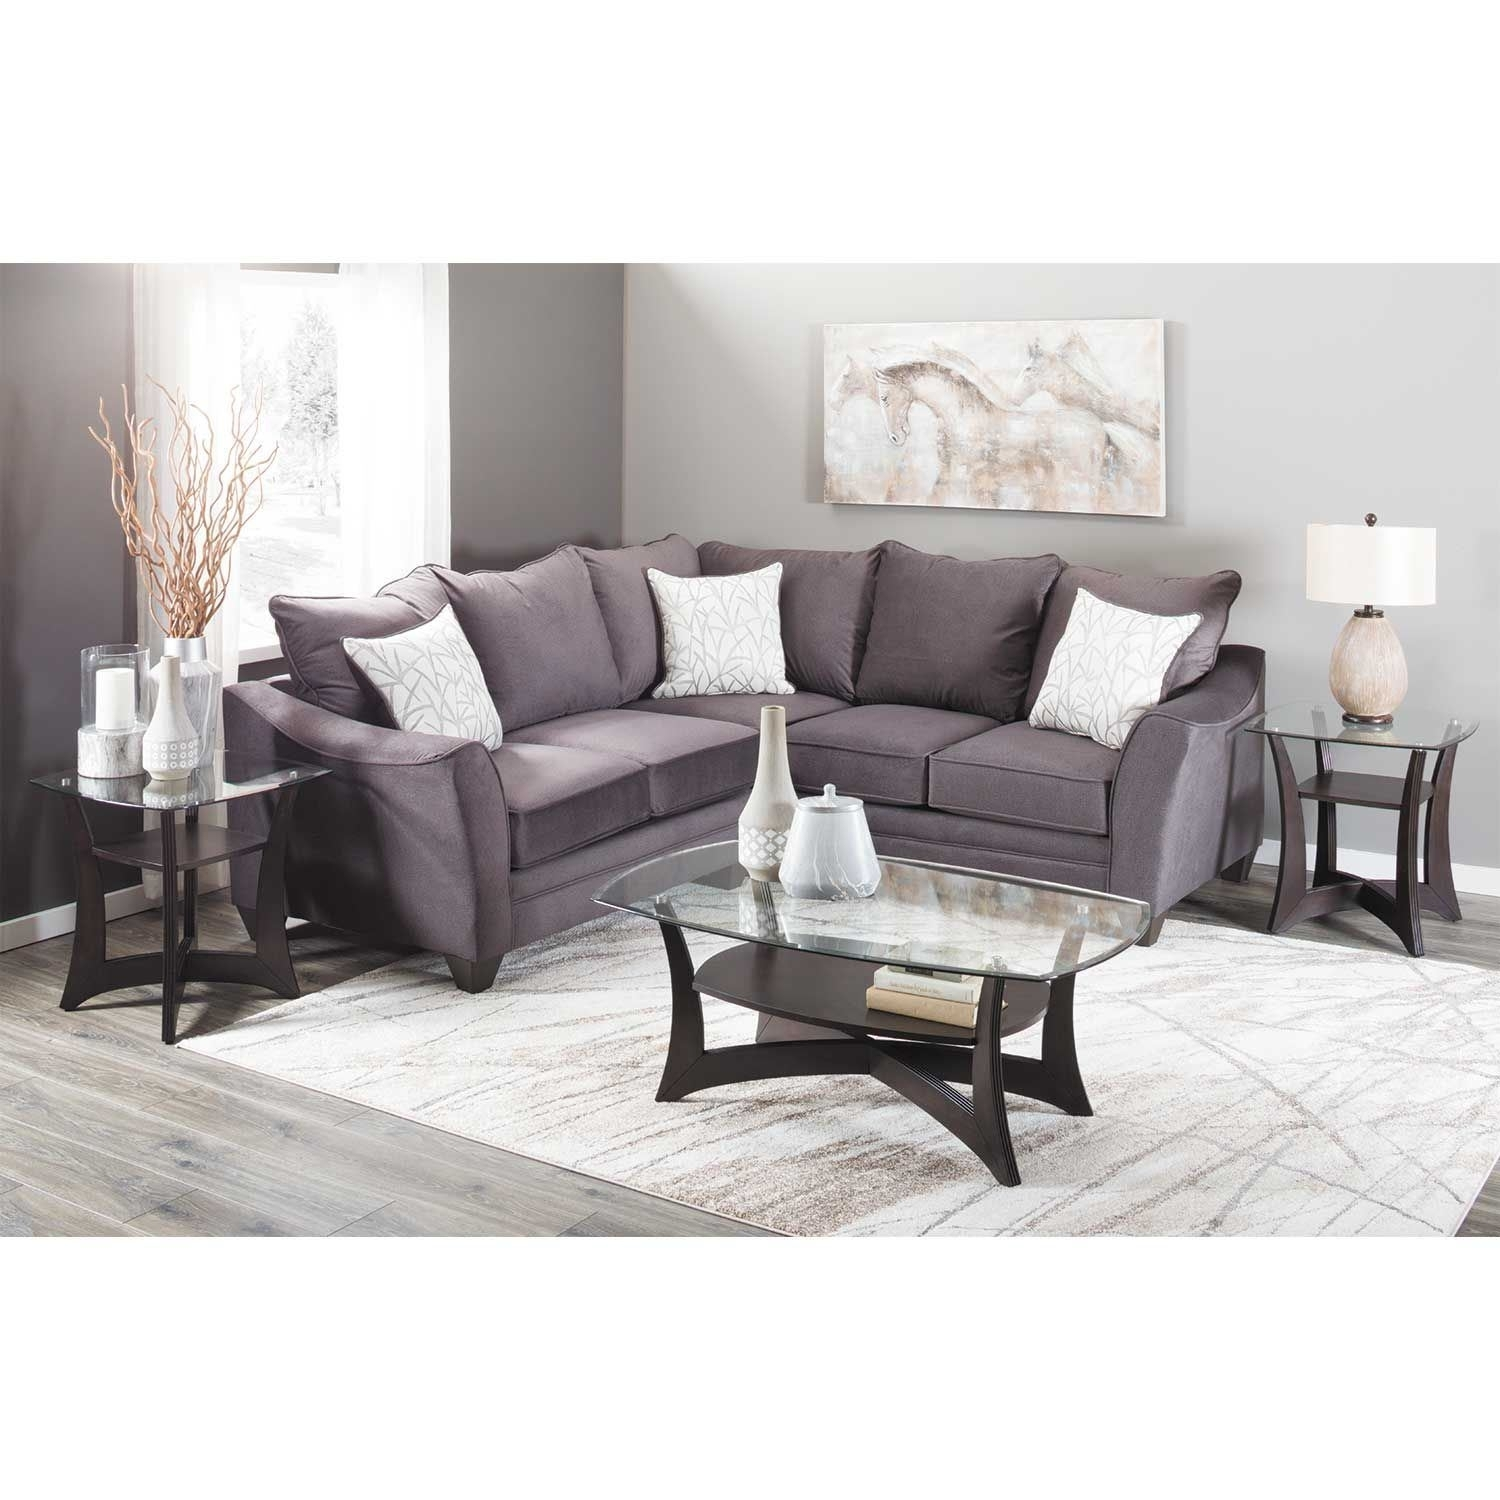 Flannel Seal 2 Piece Sectional With Raf Sofa | 3810/3816 | American within Cosmos Grey 2 Piece Sectionals With Raf Chaise (Image 11 of 30)